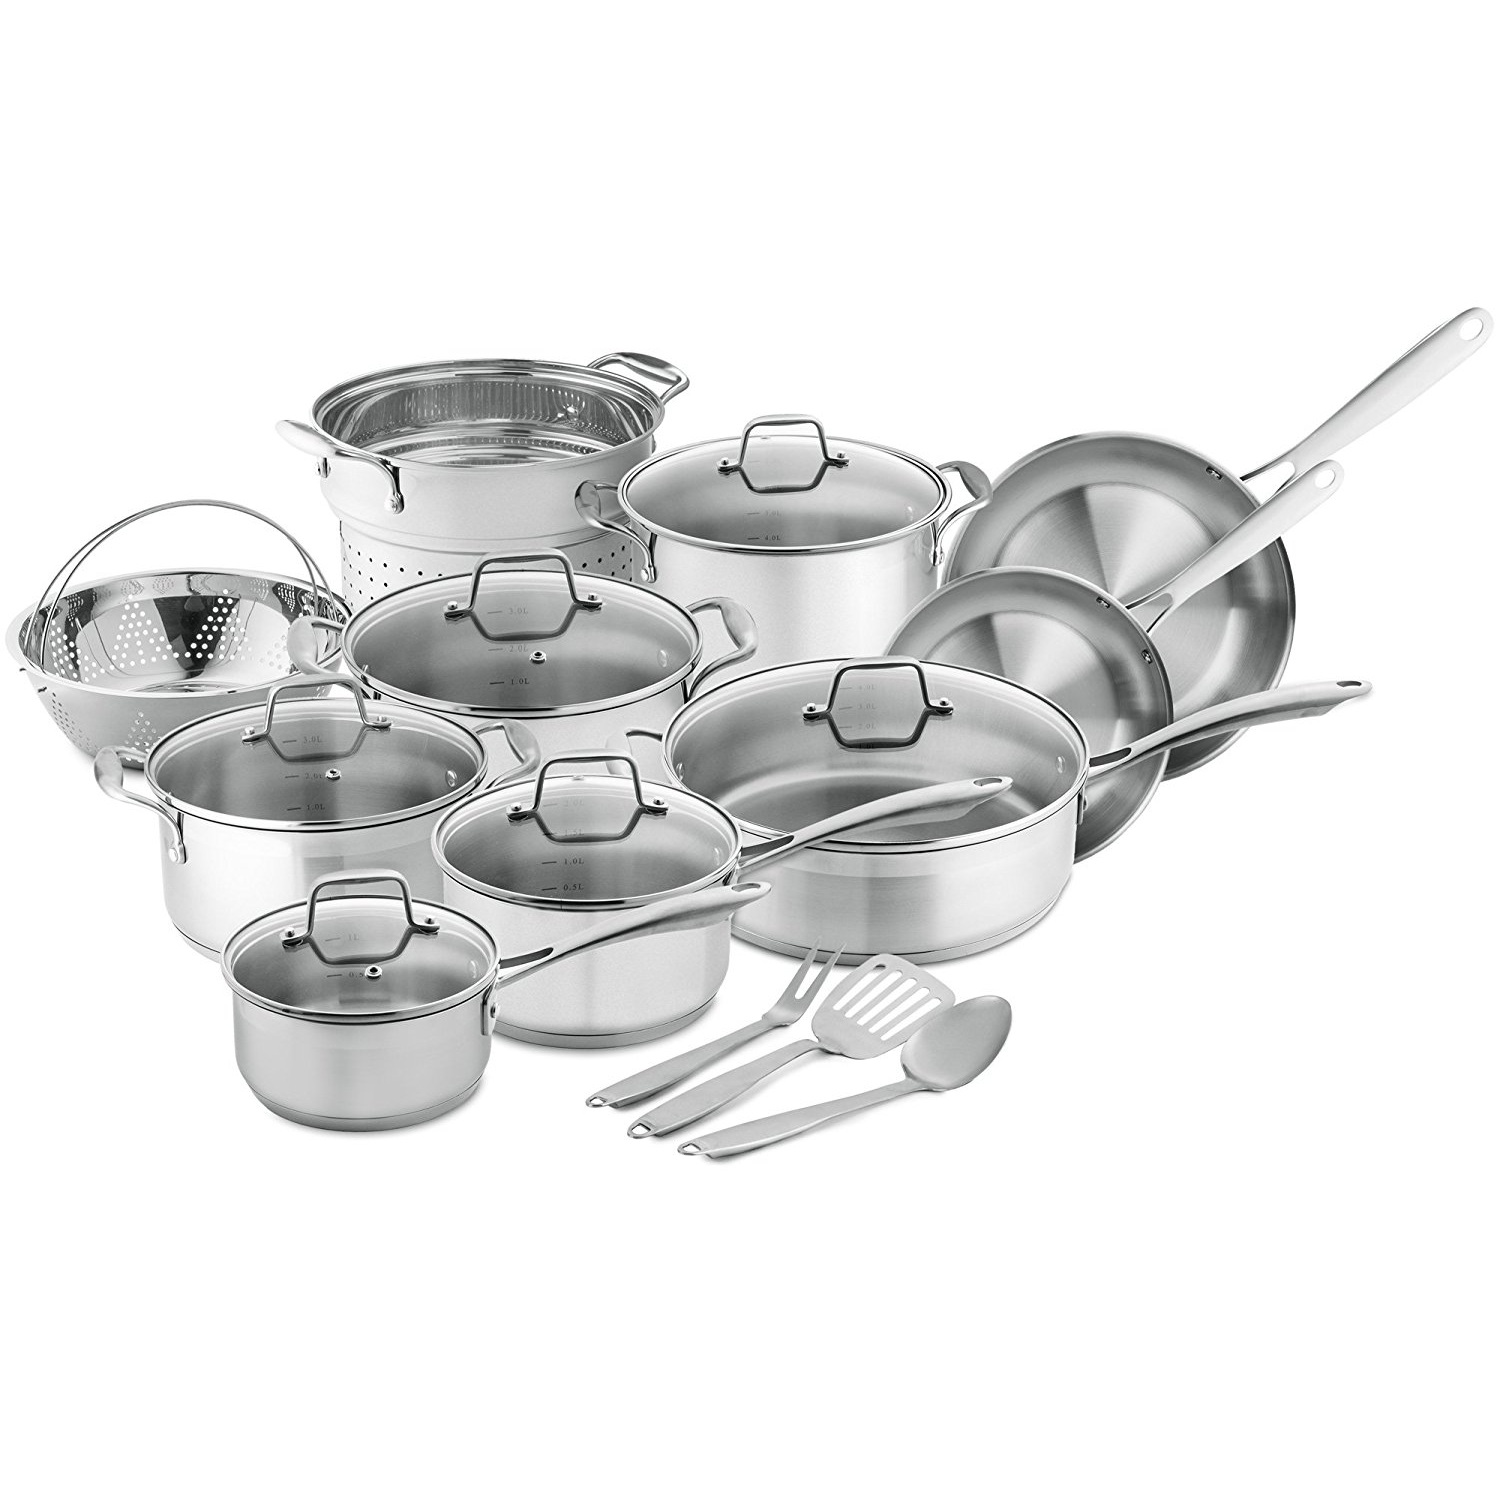 Chef's Star Stainless Steel Cookware Set